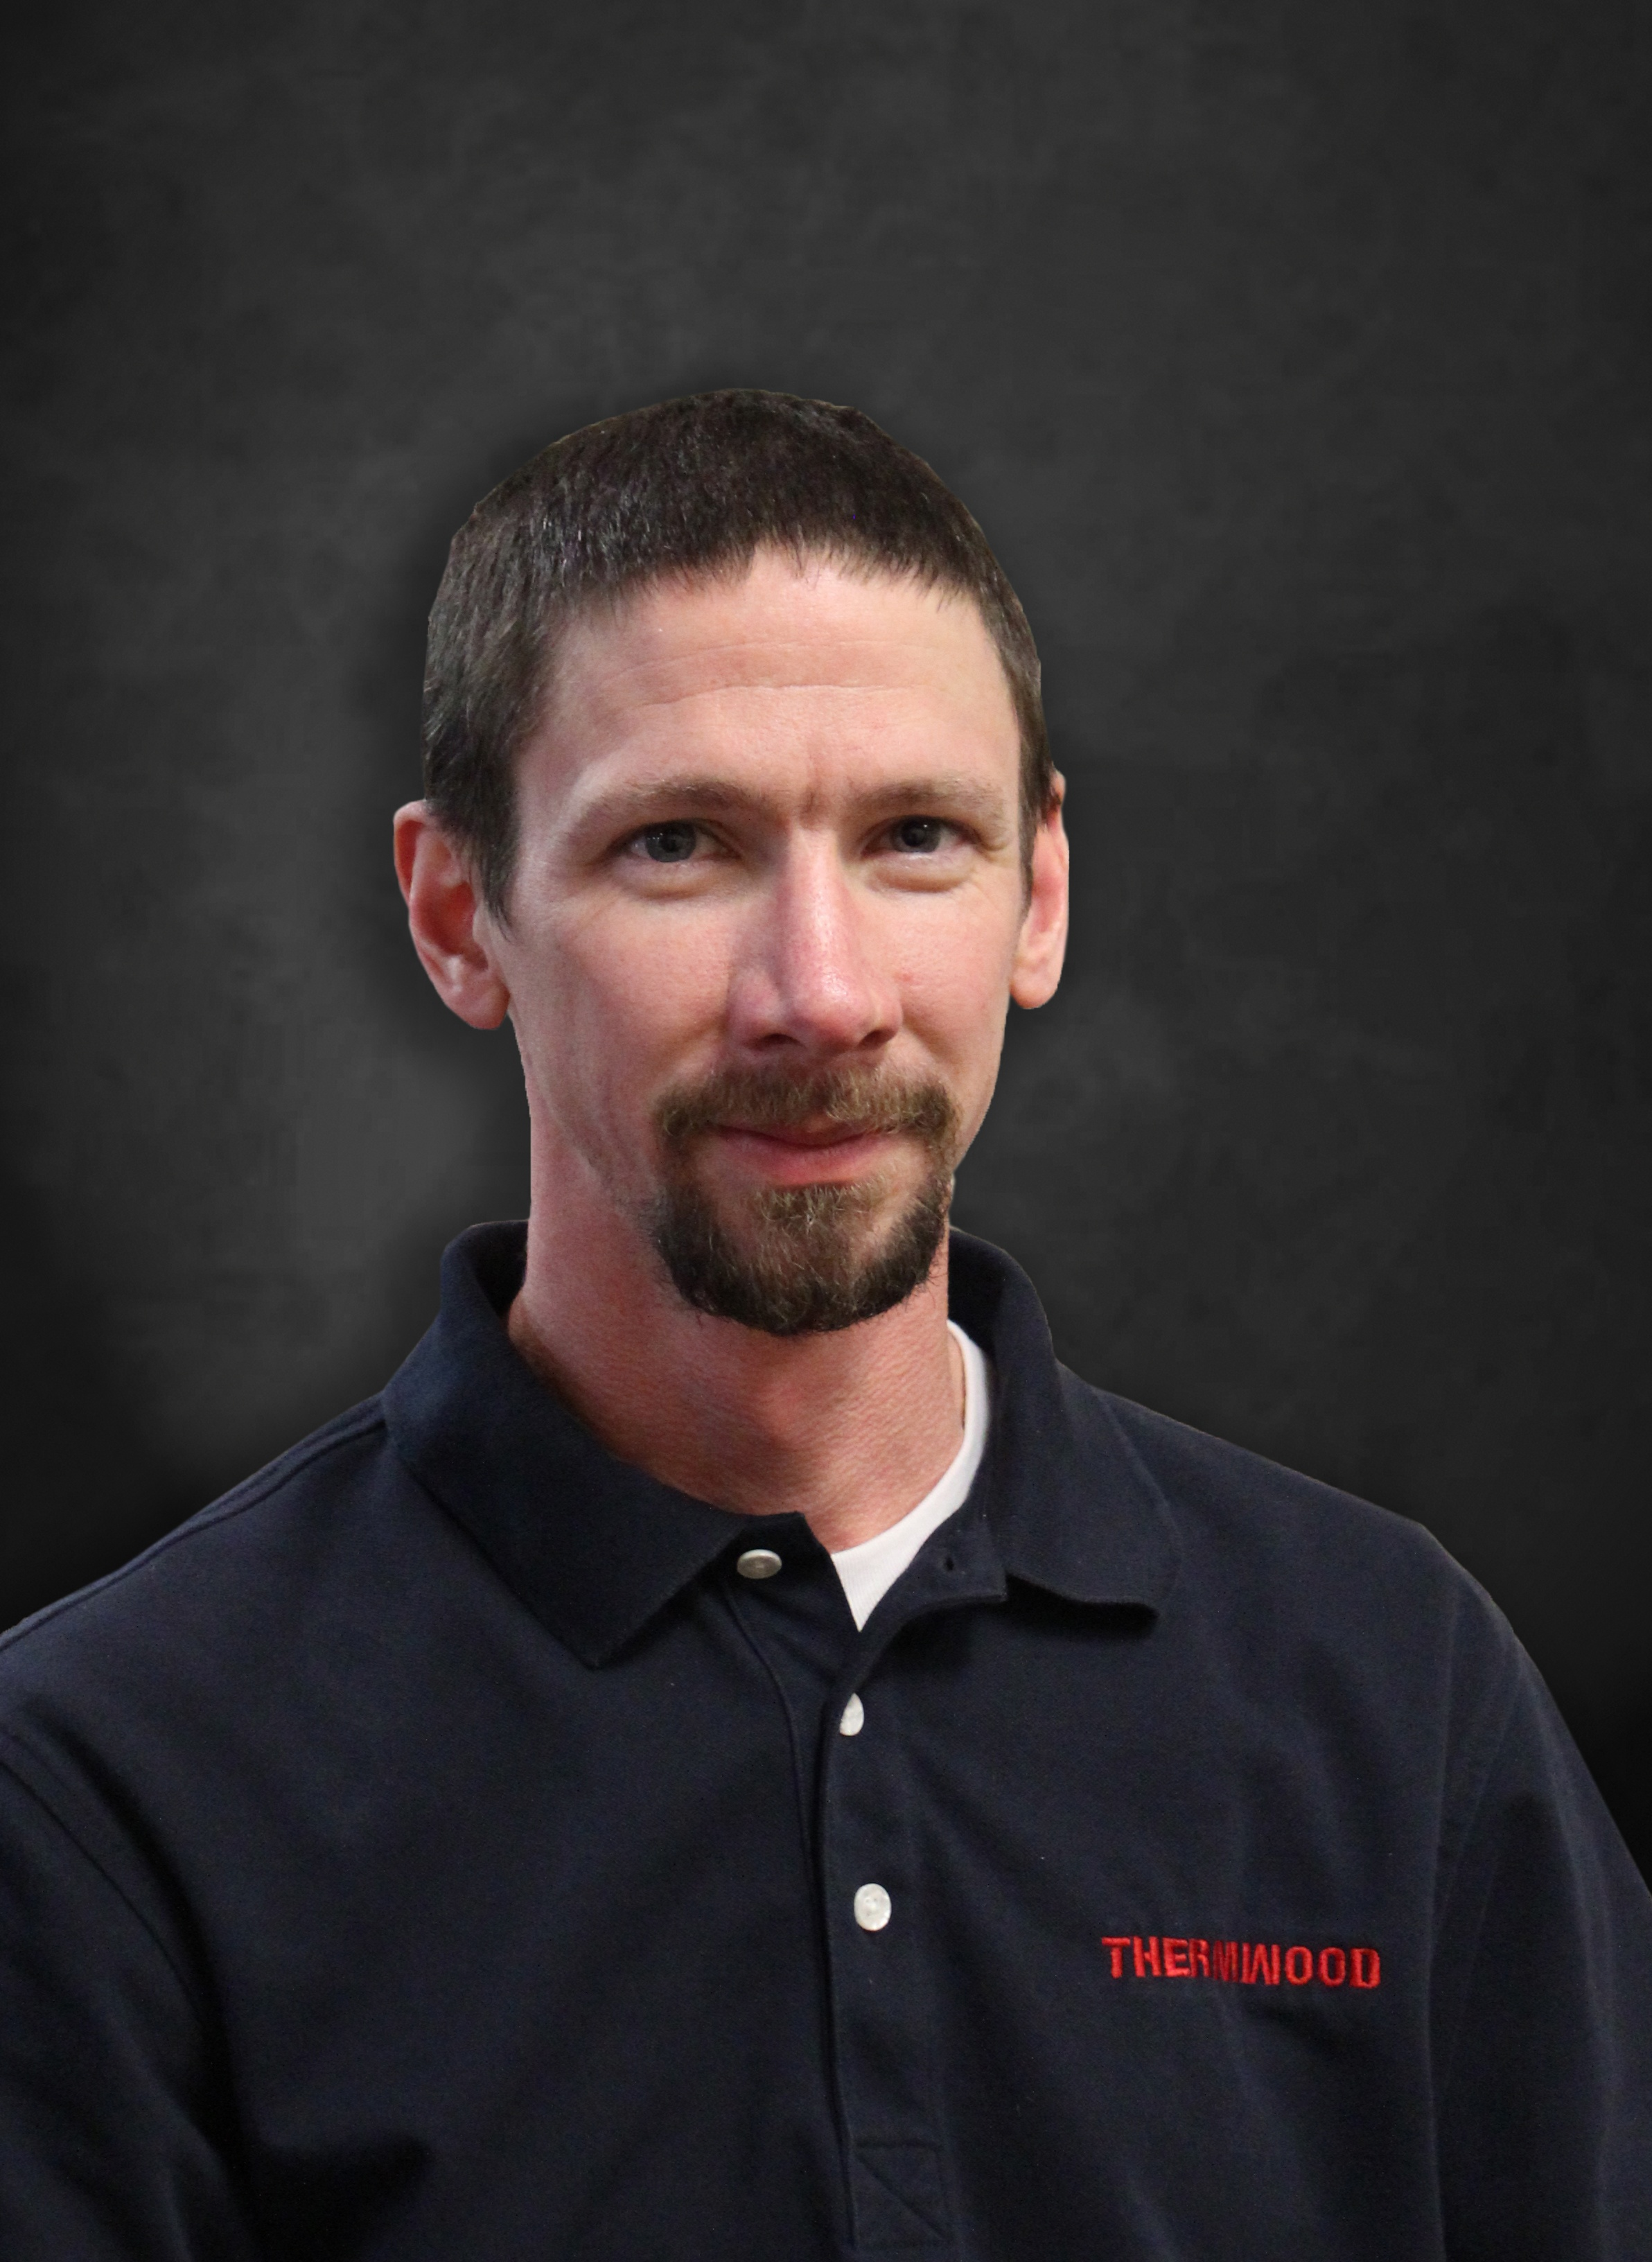 Thermwood Announces Logan Heeke as New Demonstration Technician